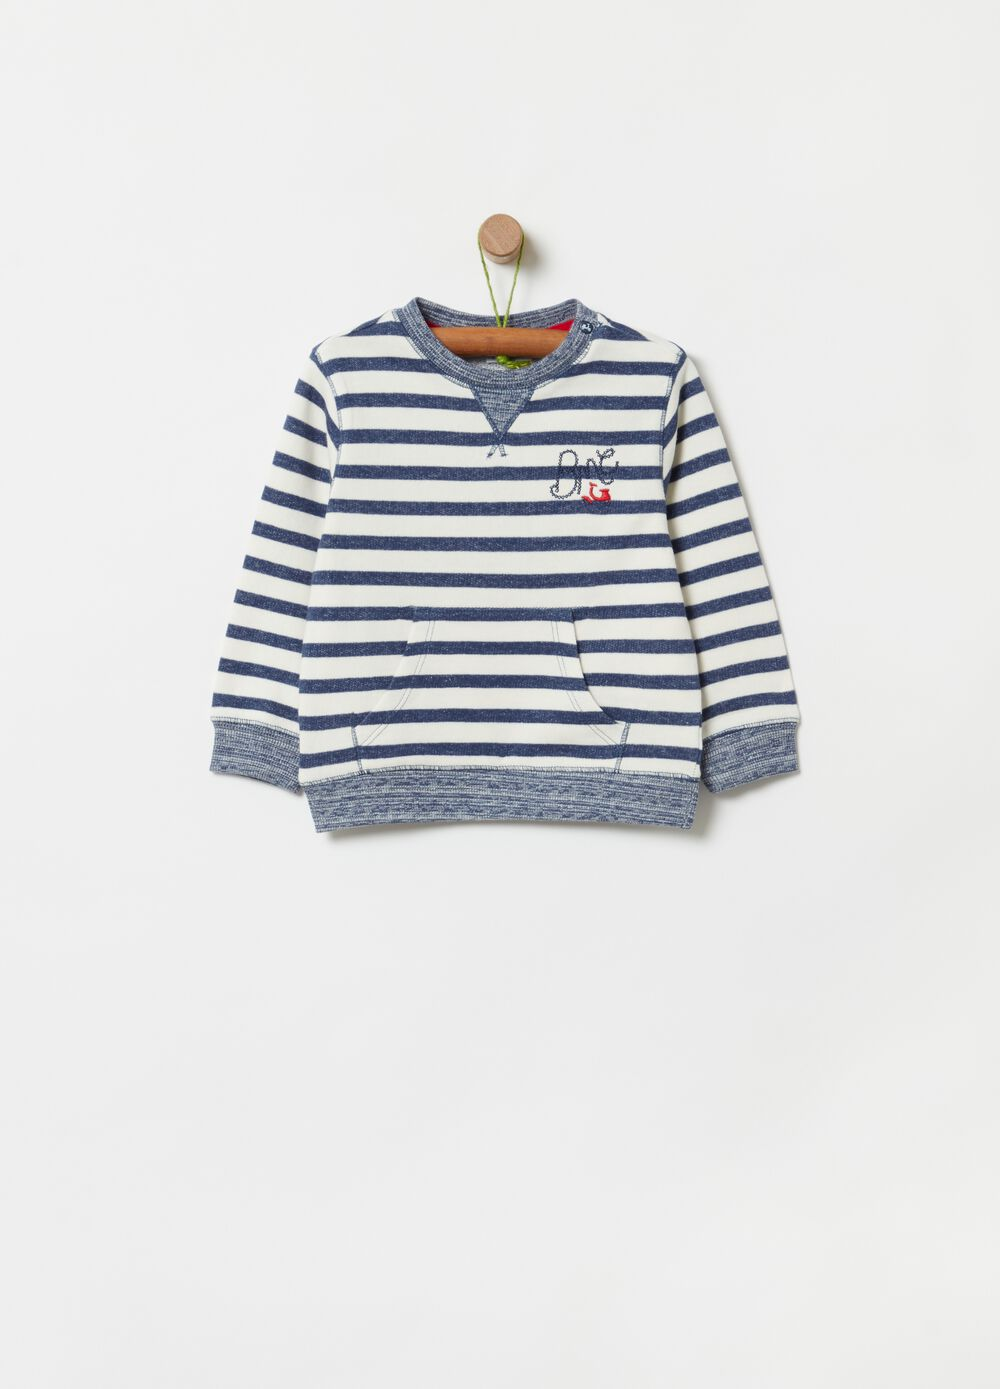 100% organic cotton sweatshirt with stripes